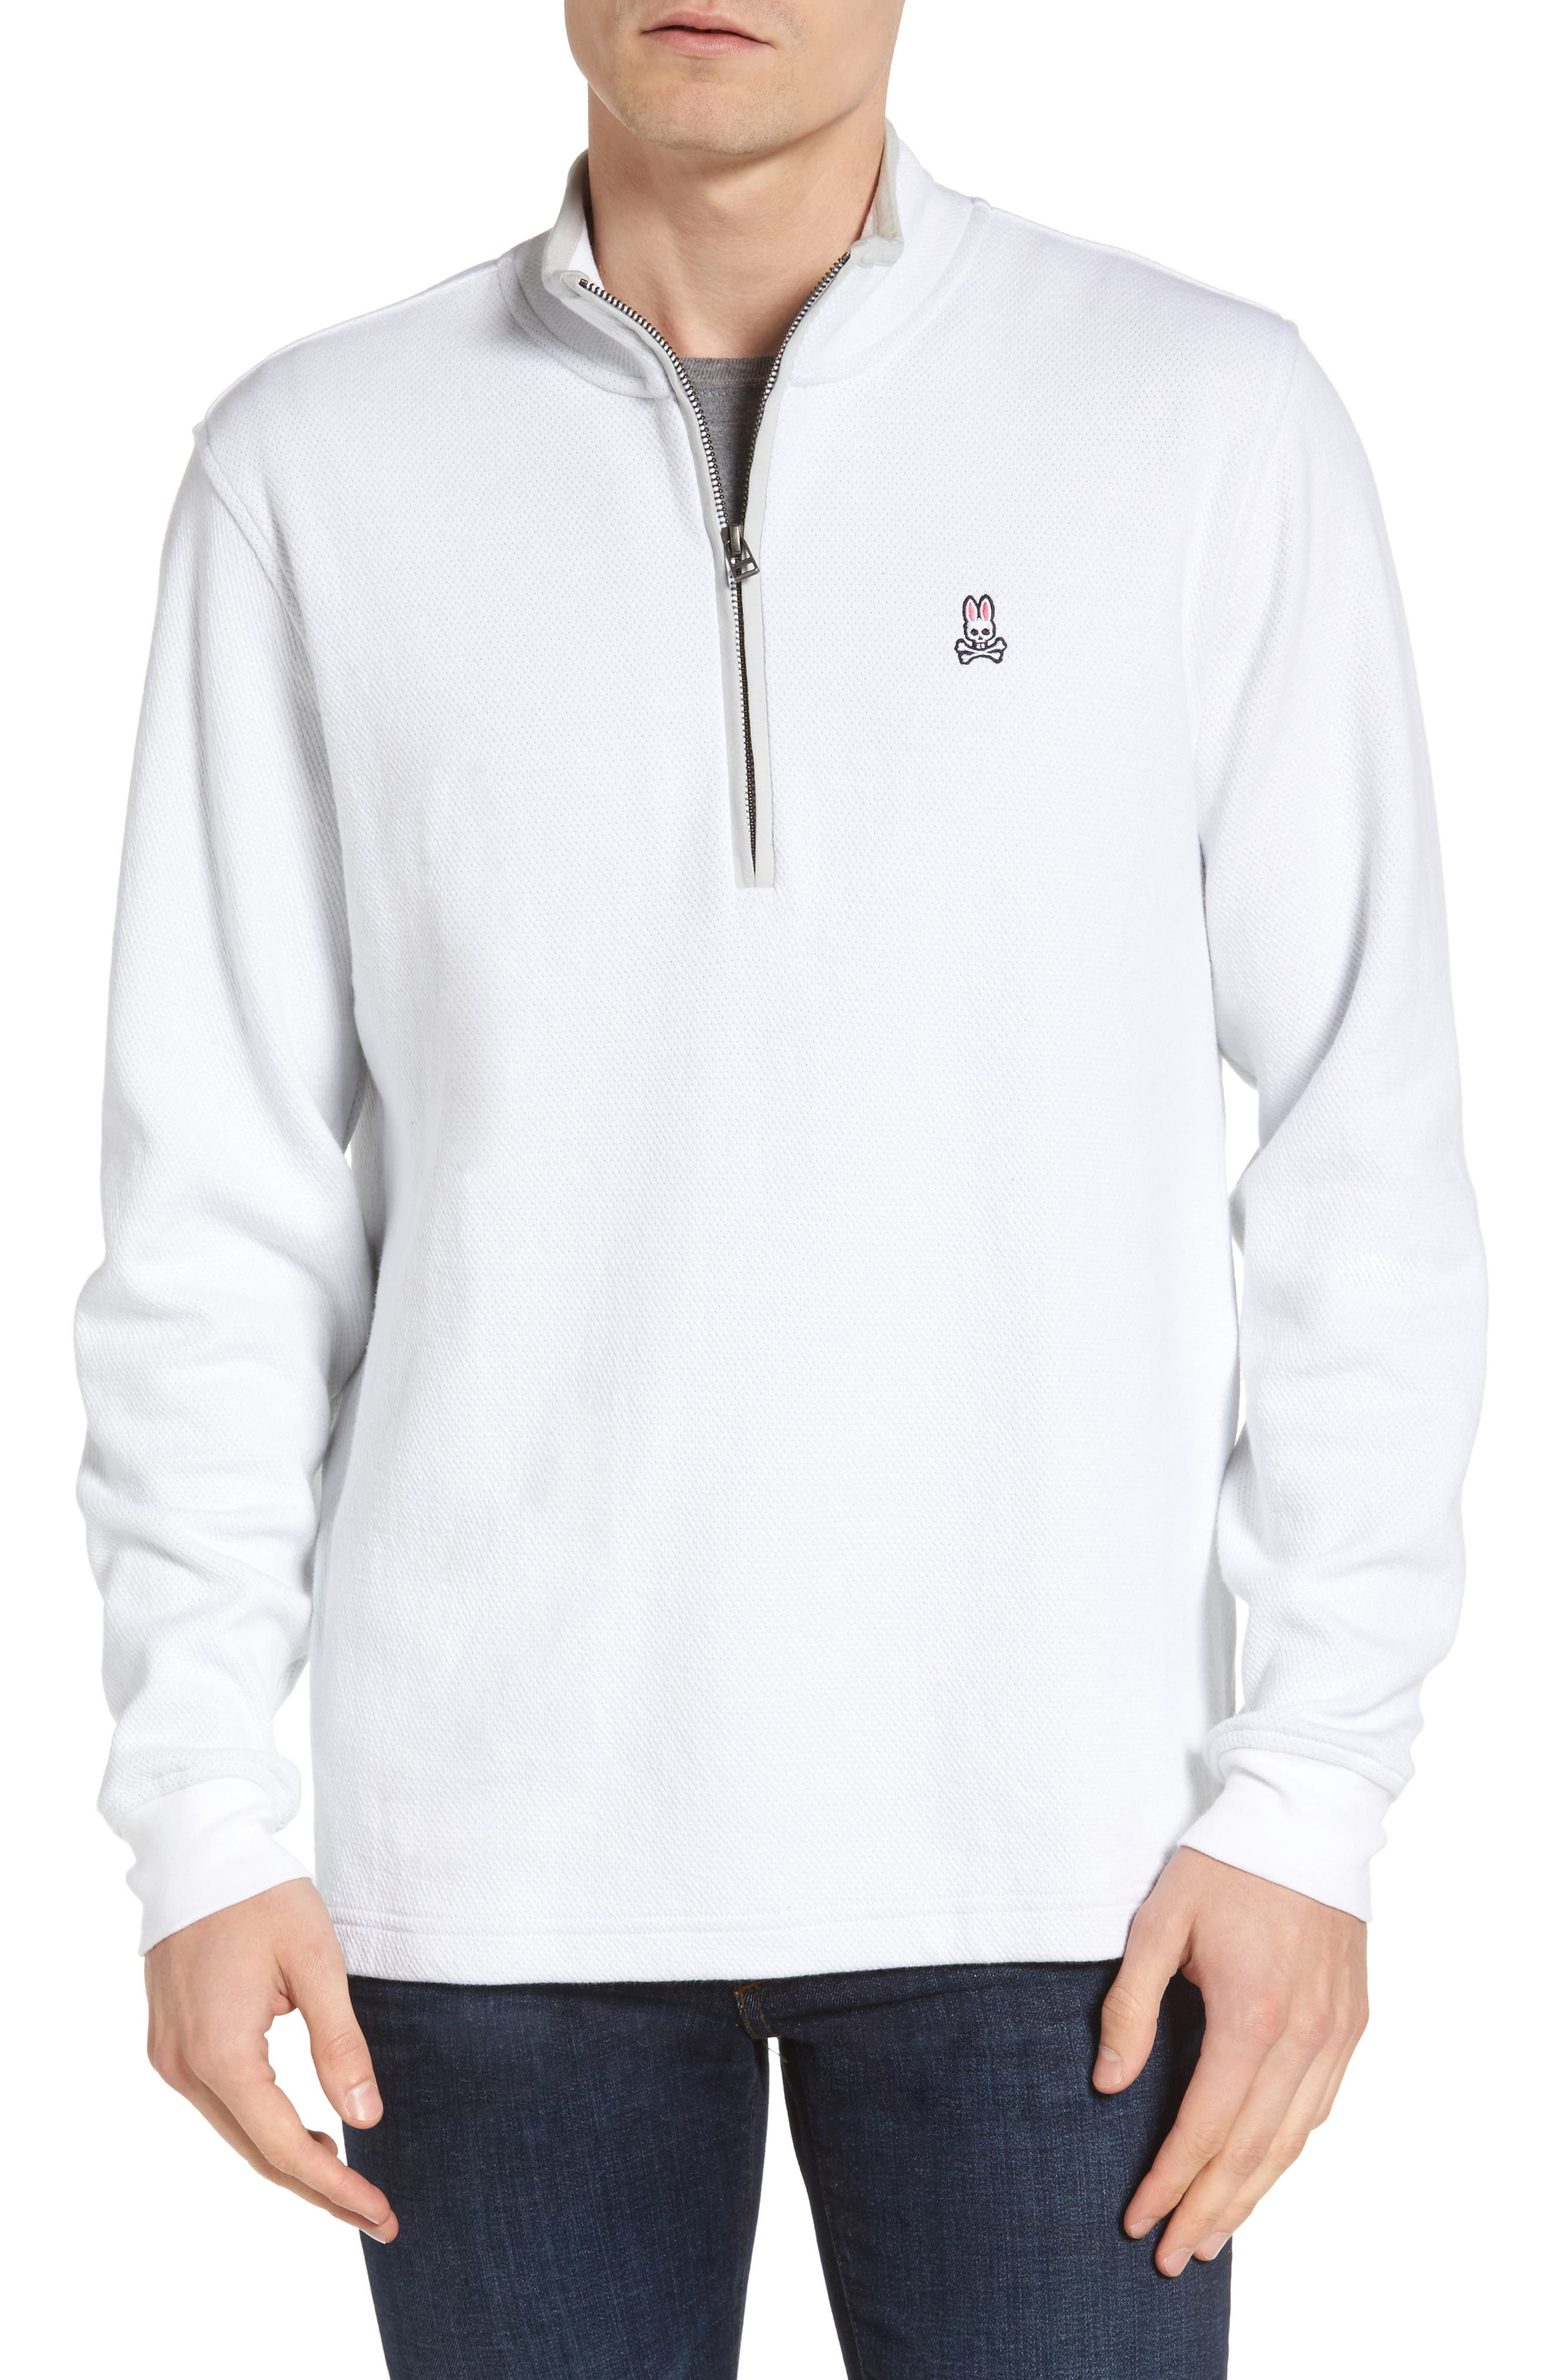 Golf Half Zip Pullover,                             Main thumbnail 1, color,                             100